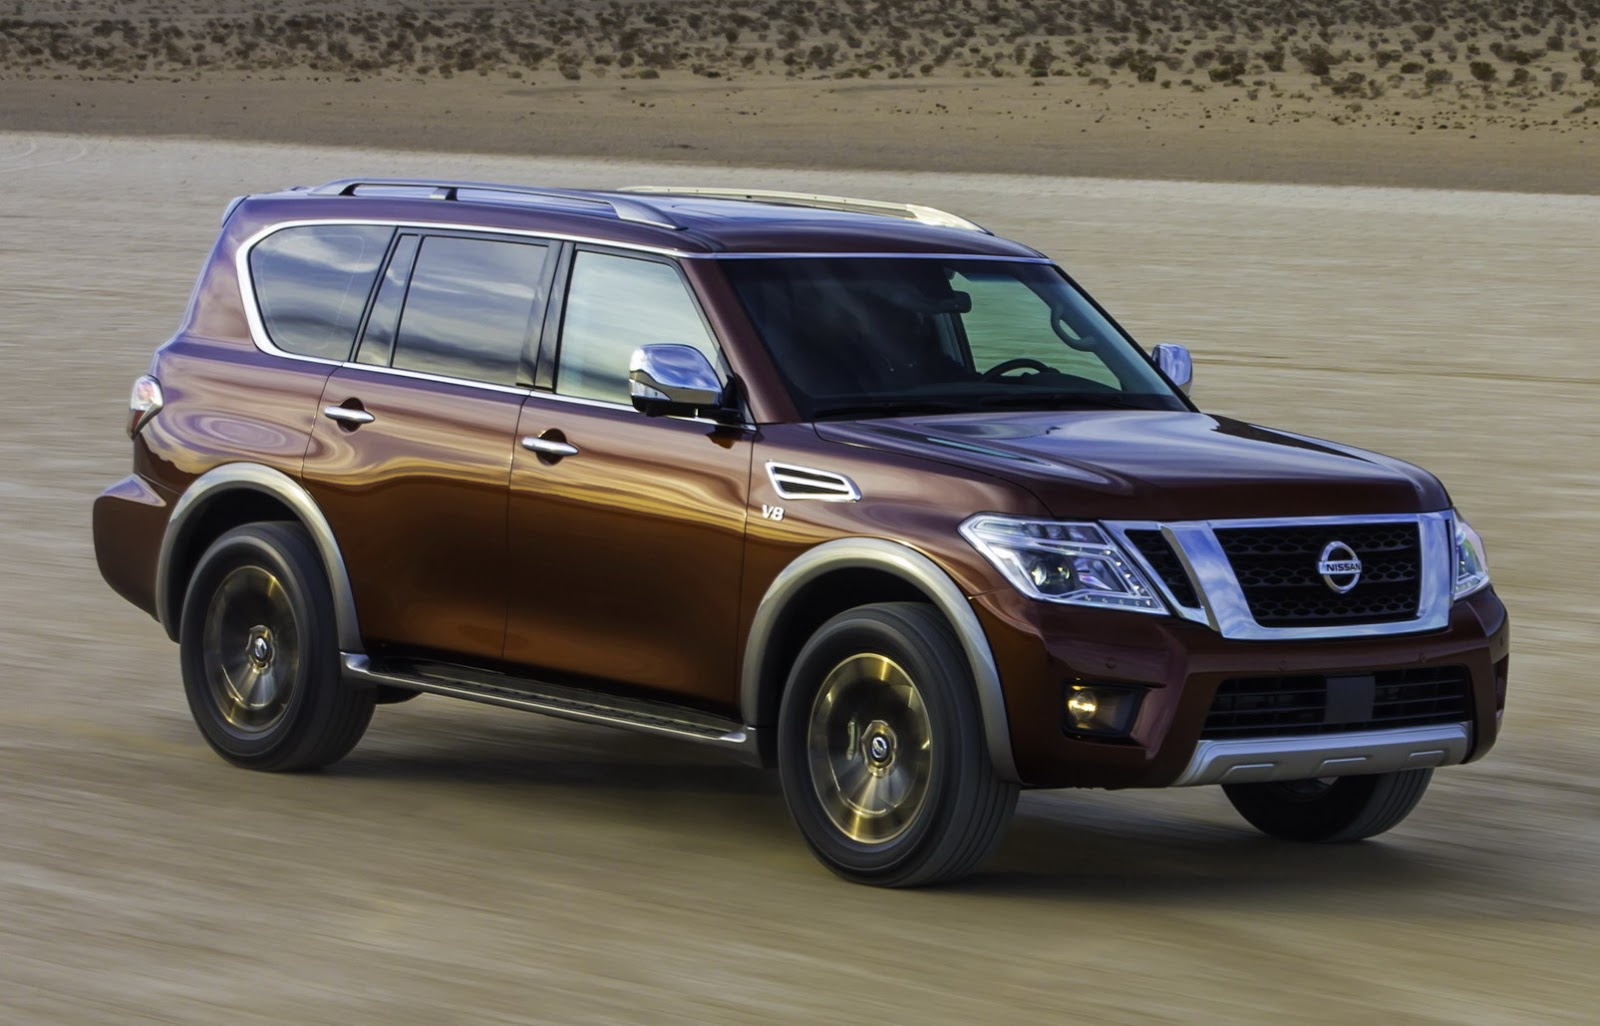 2017 nissan armada is north america s patrol or the infiniti qx80 39 s less glitzy twin. Black Bedroom Furniture Sets. Home Design Ideas